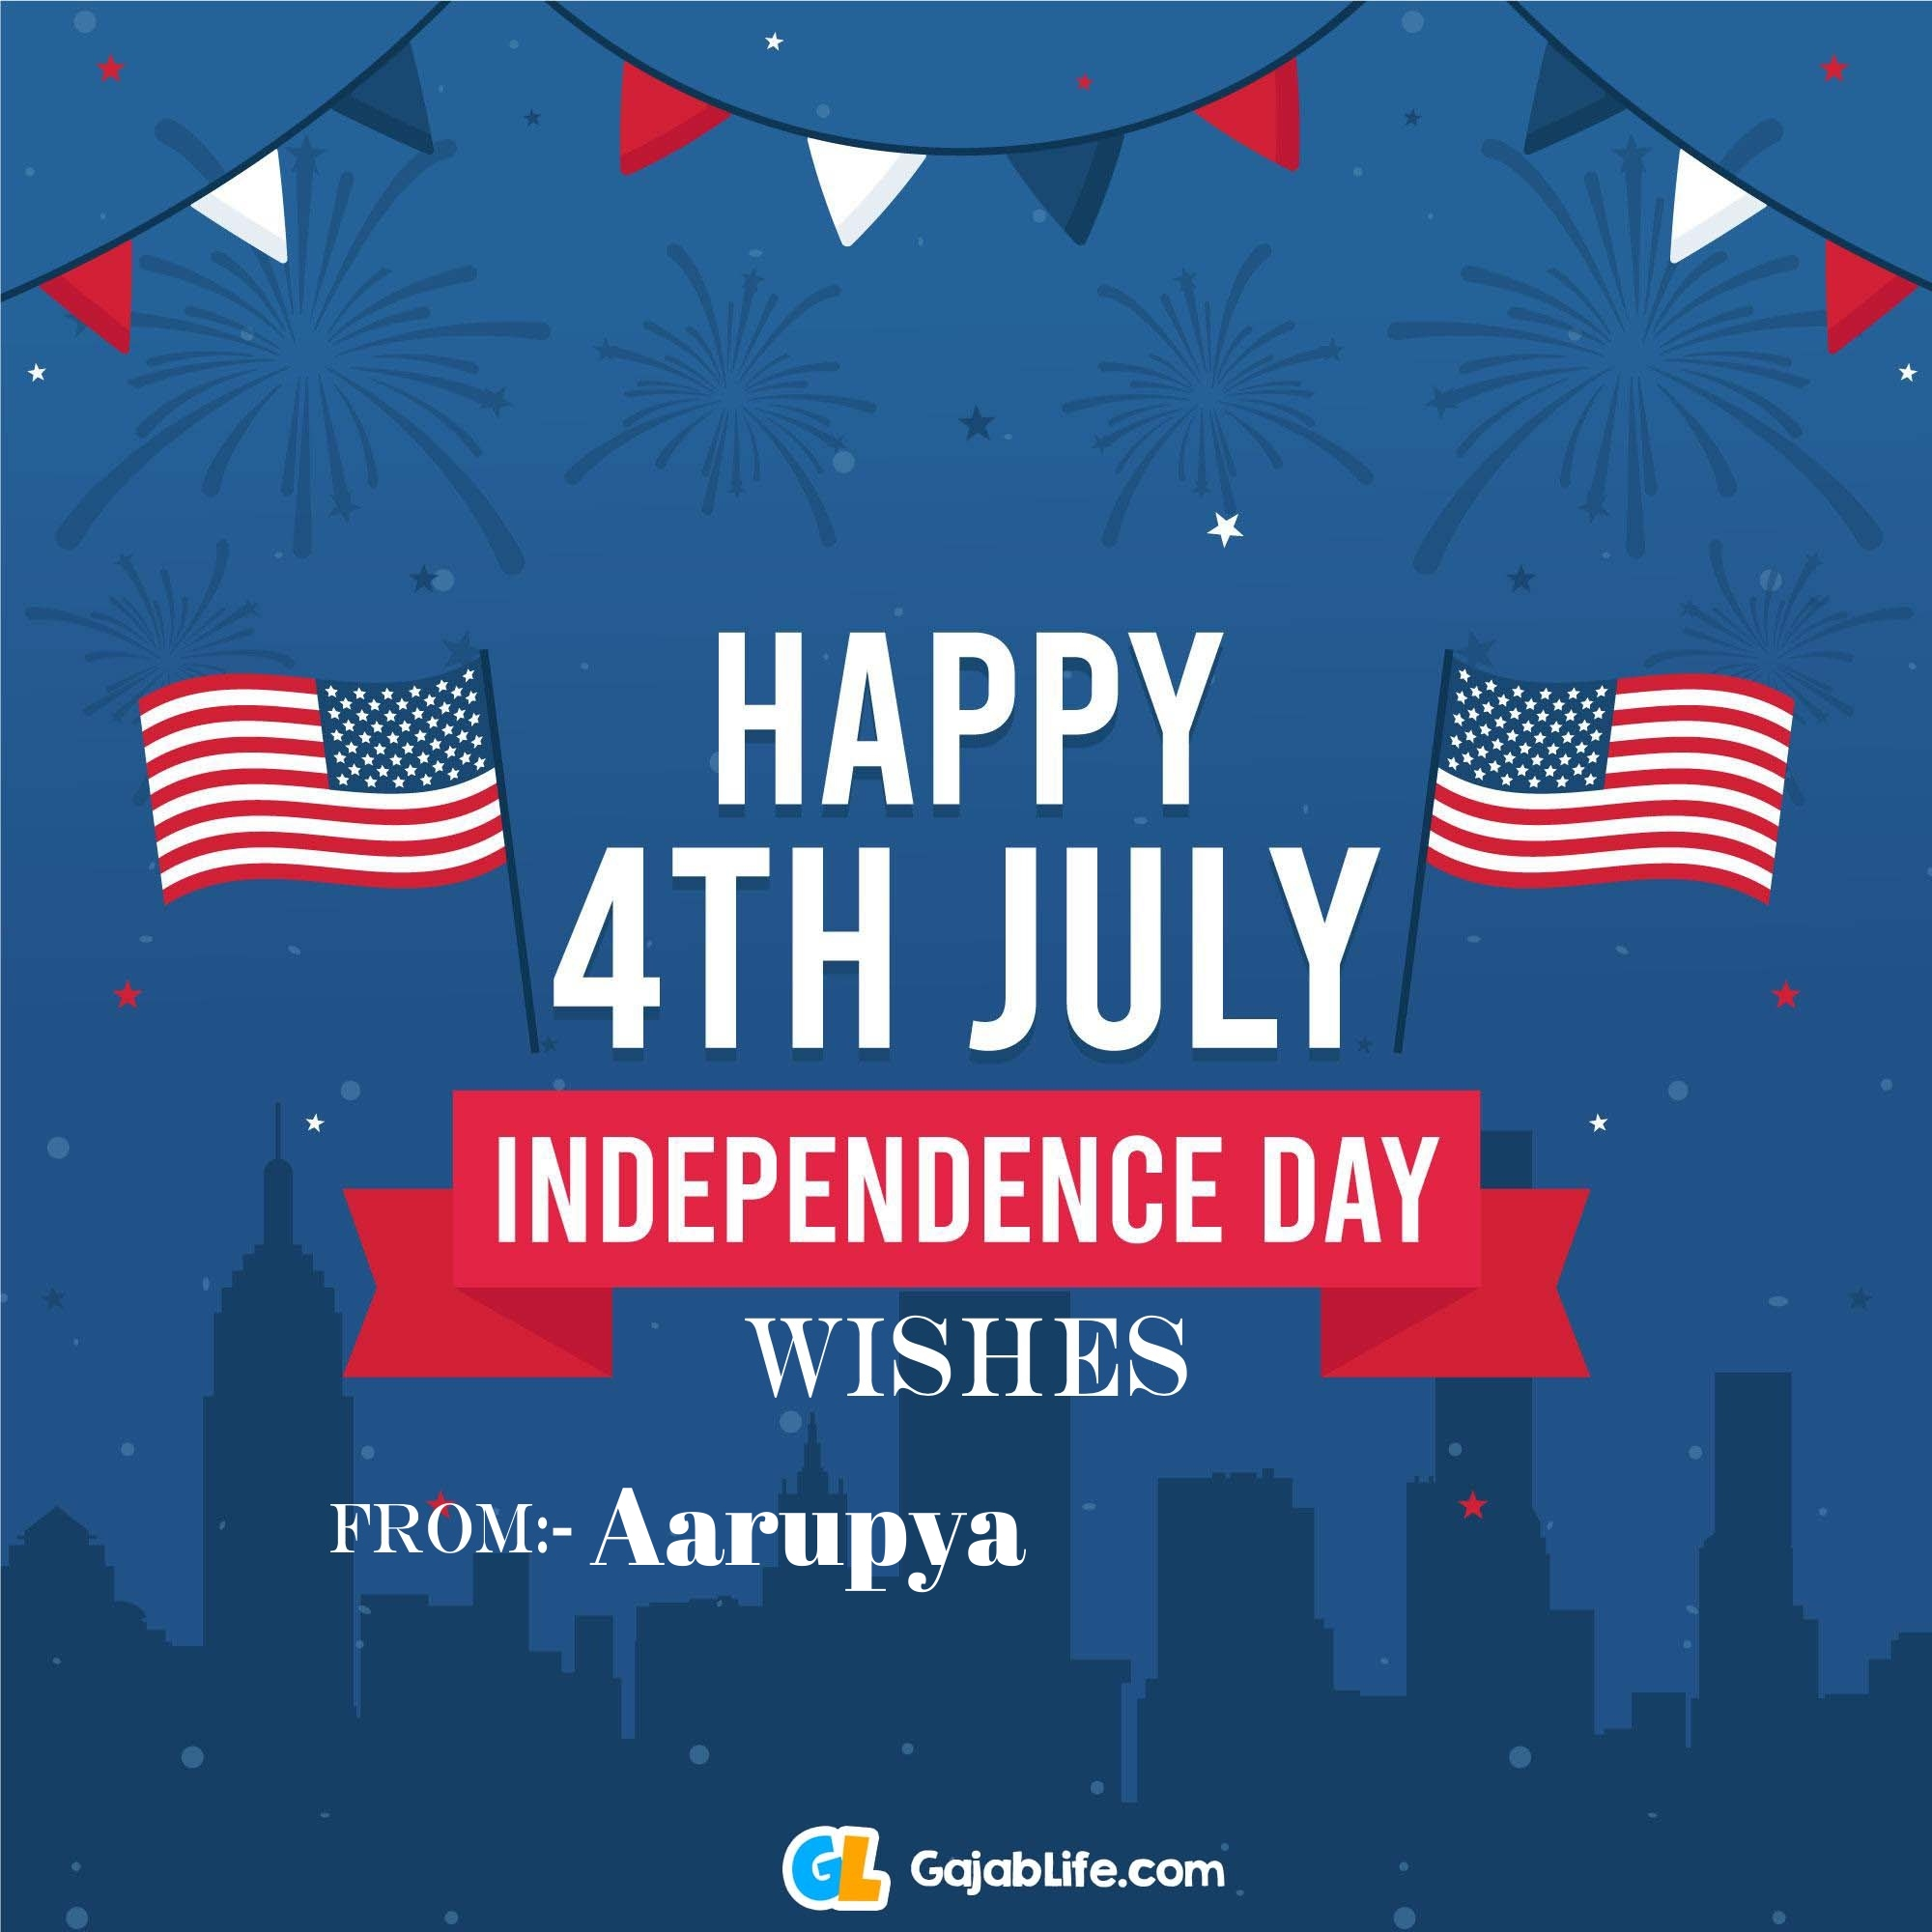 Aarupya happy independence day united states of america images